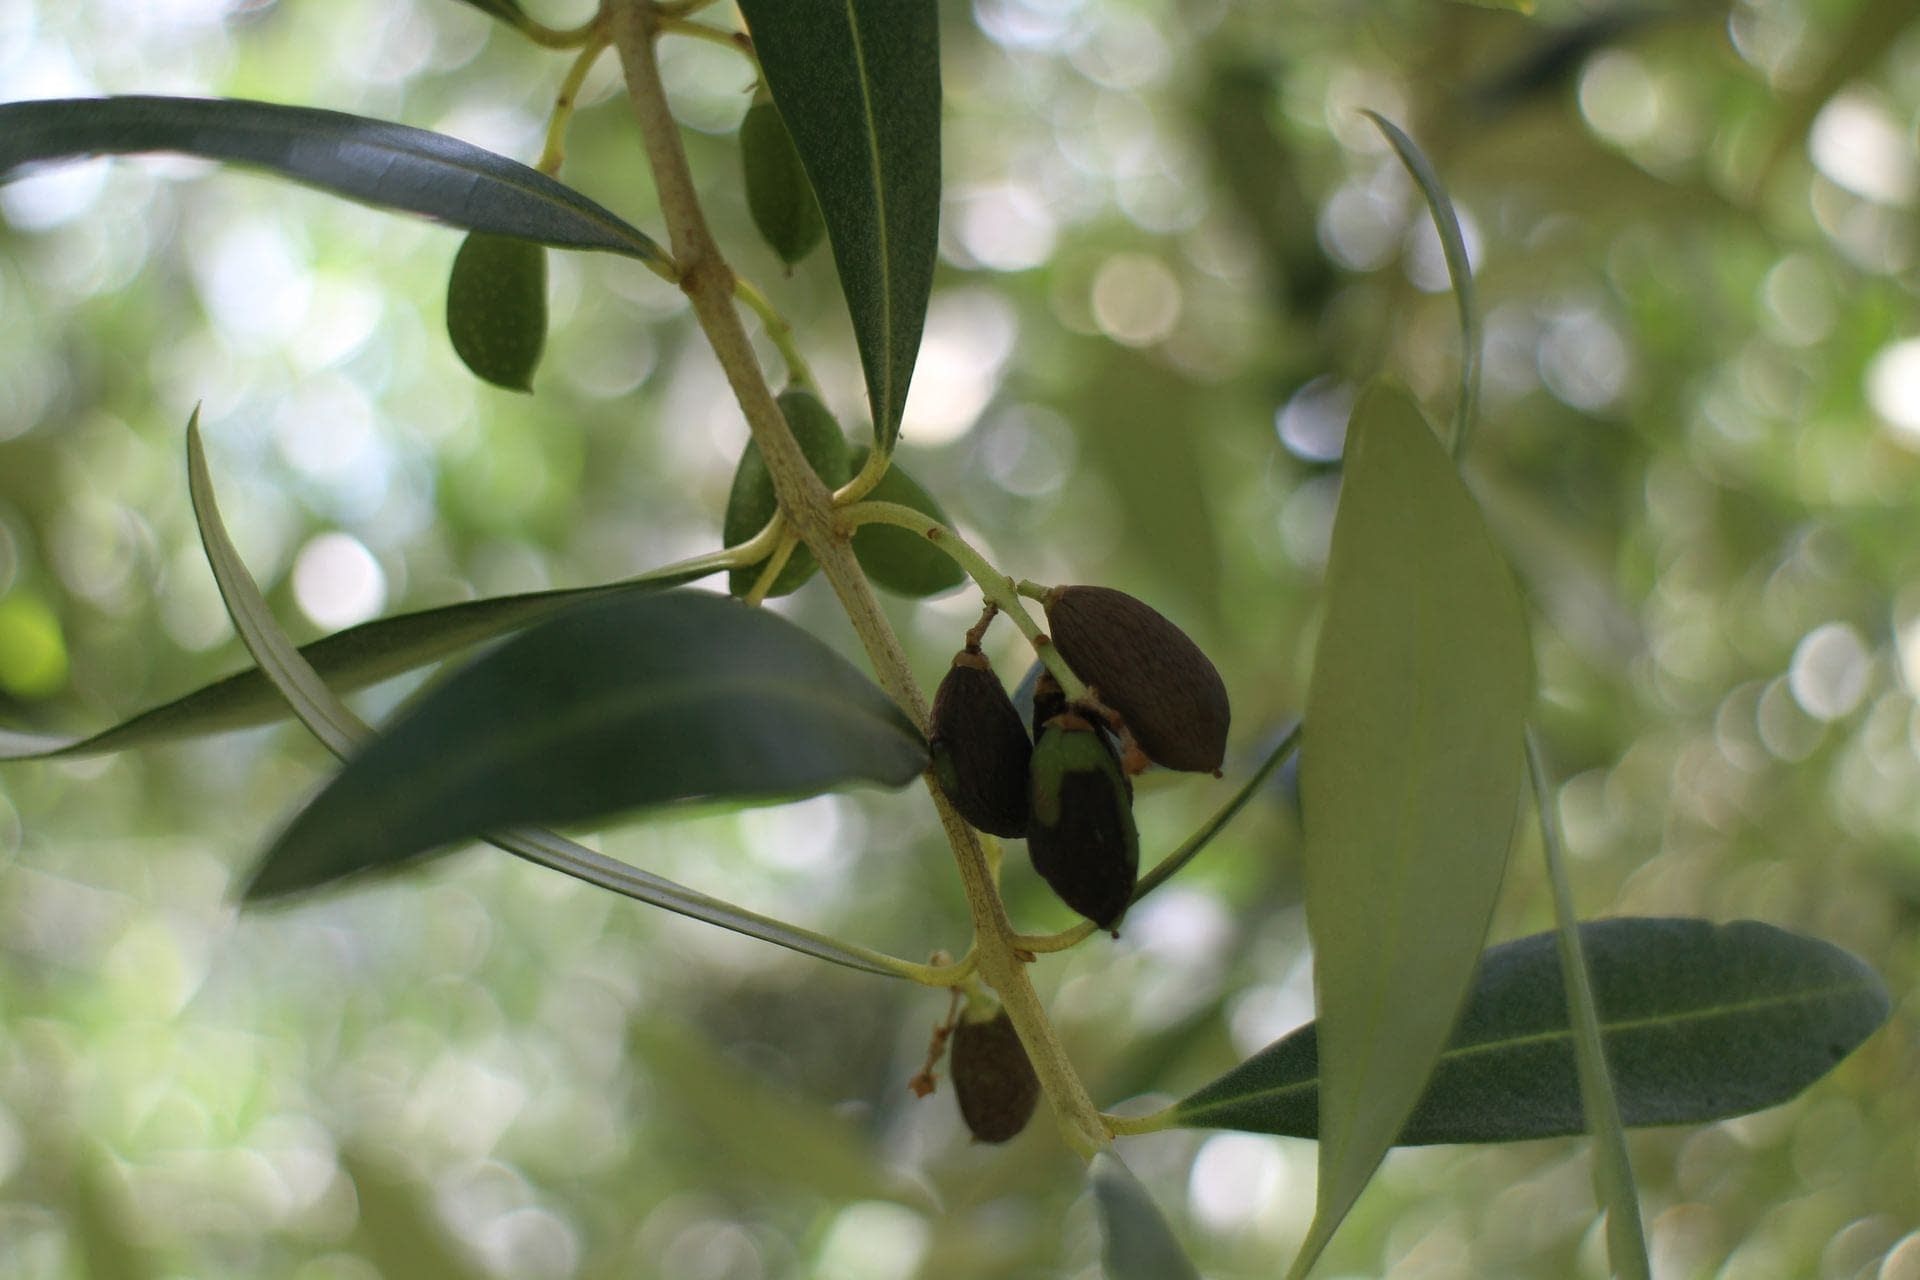 europe-asian-bug-may-be-cause-of-green-drop-in-olive-trees-researchers-find-olive-oil-times